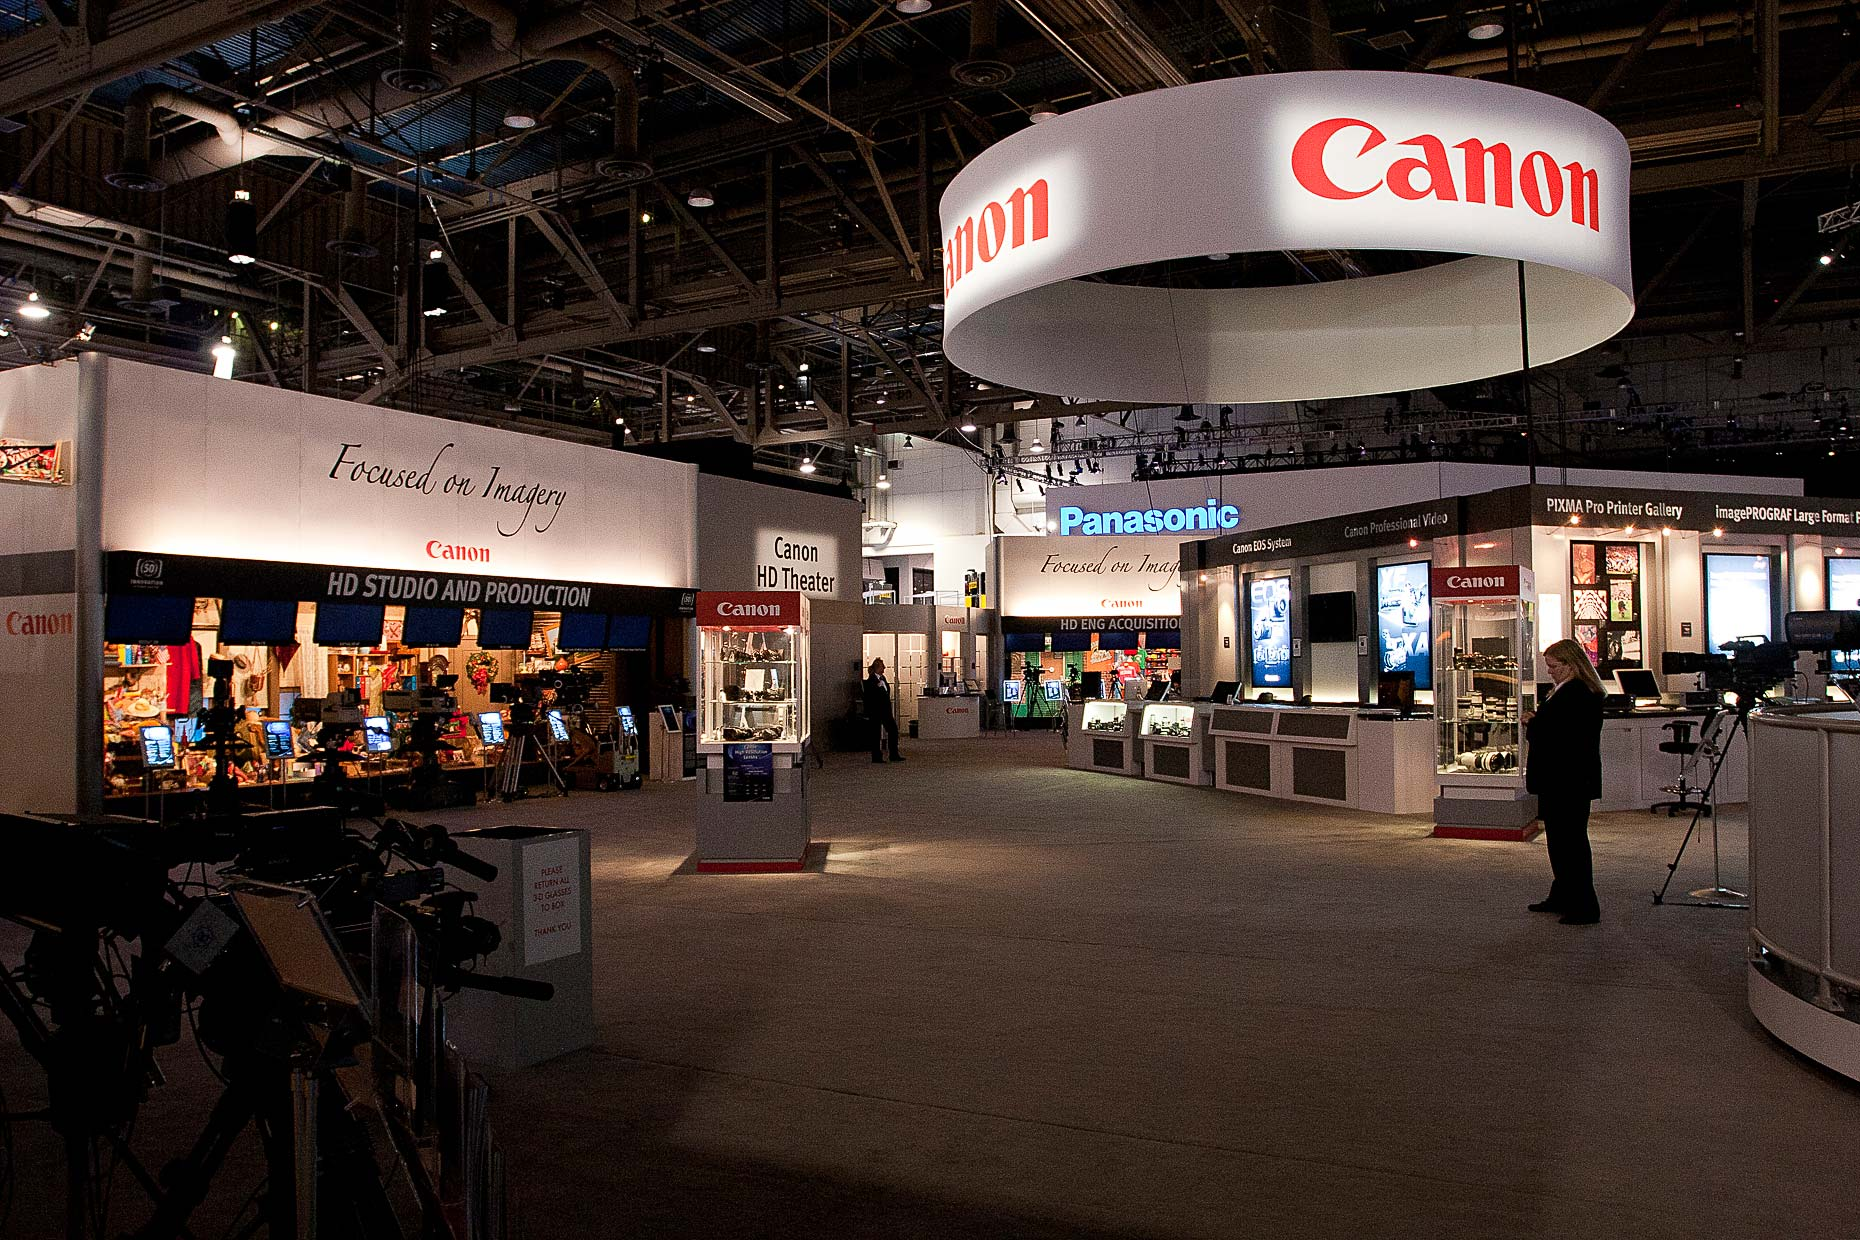 2 Canon NAB 2011 Booth